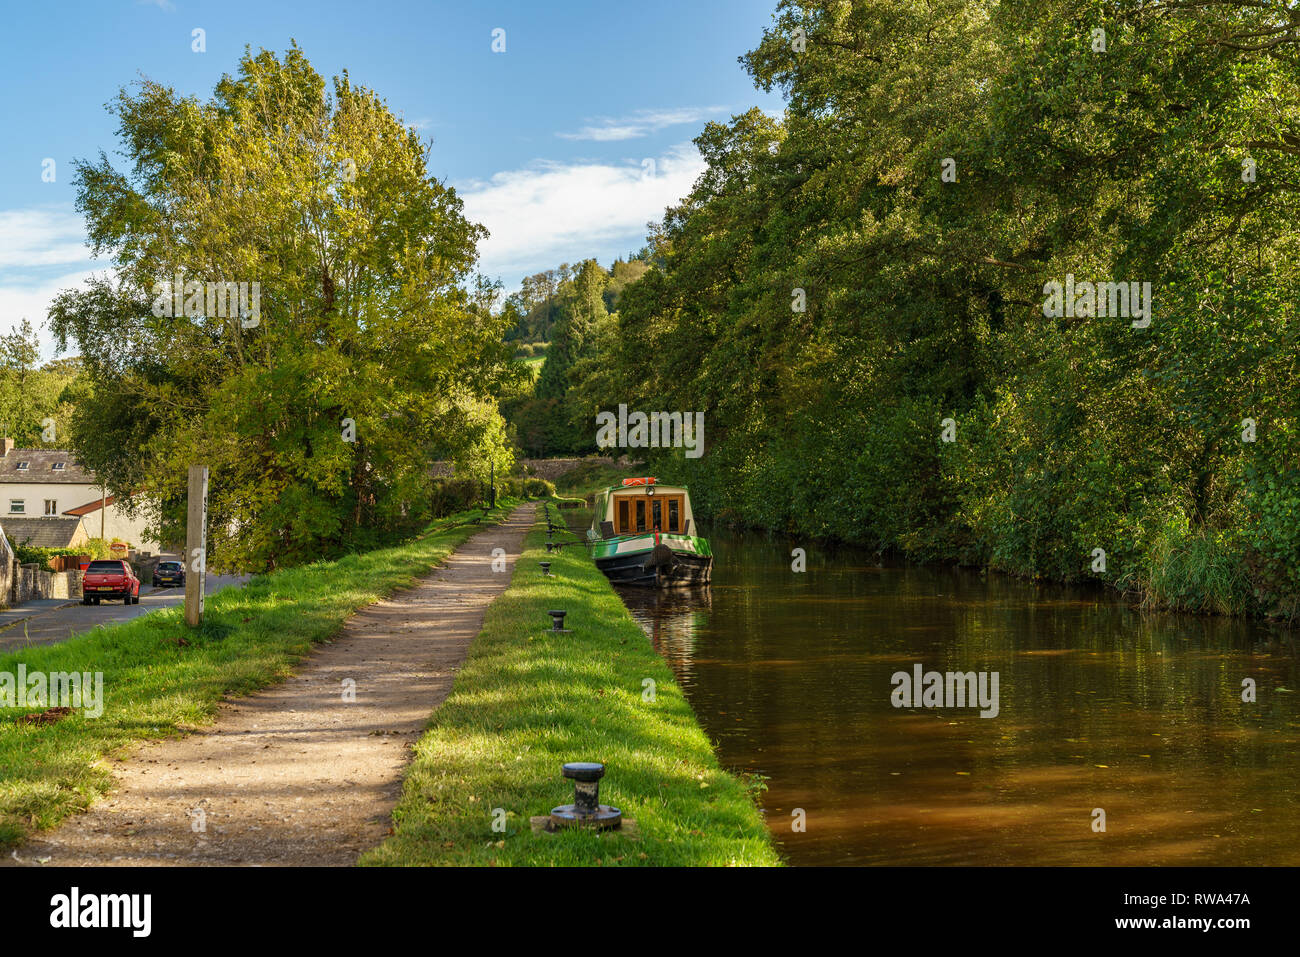 Talybont on Usk, Powys, Wales, UK - October 05, 2017: A narrowboat on the Monmouthshire & Brecon Canal - Stock Image